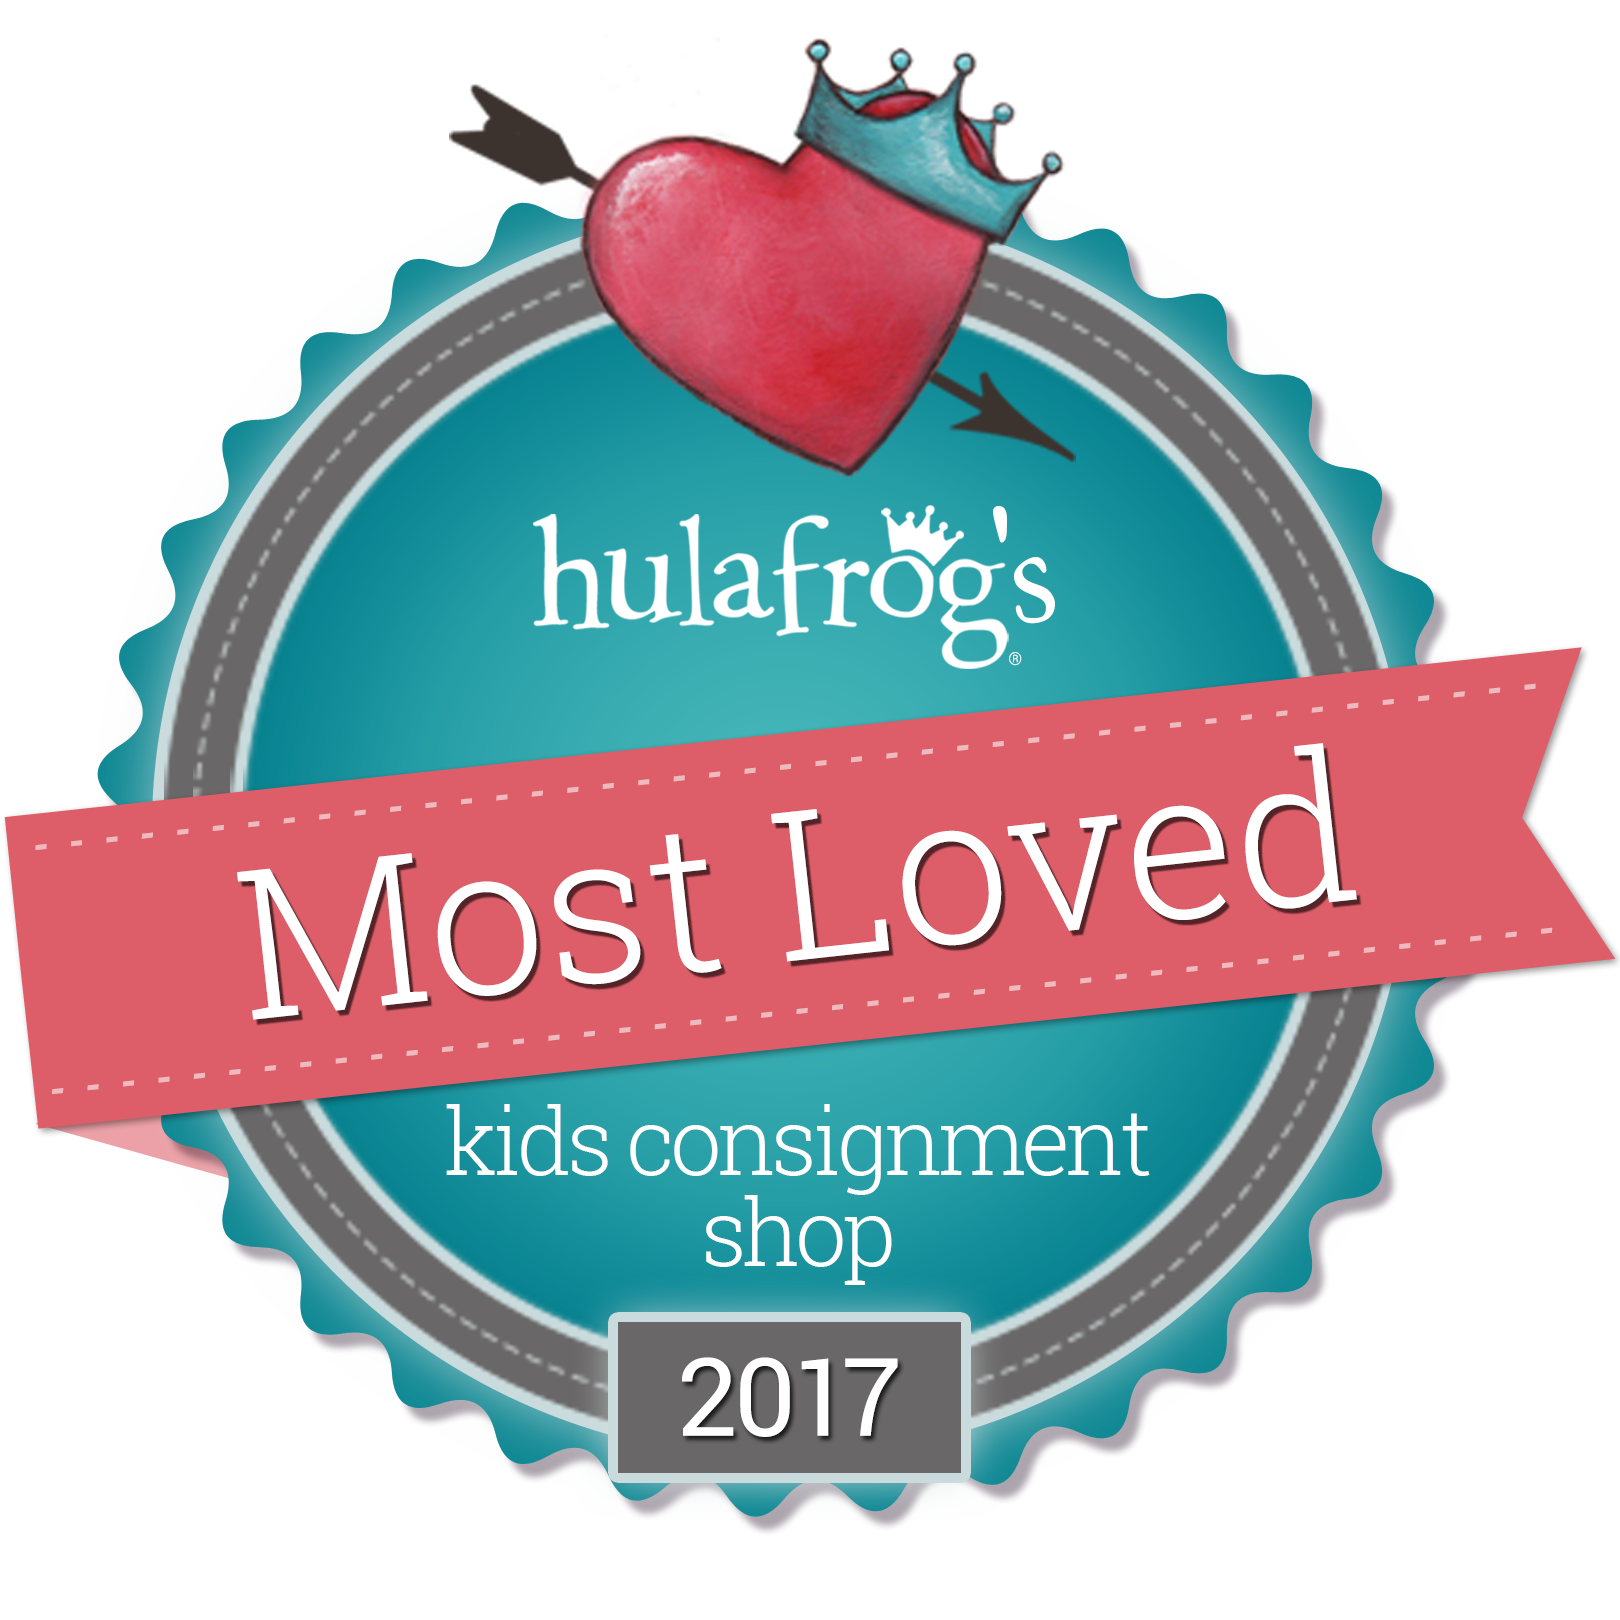 Hula Frogs Most Loved Kids Consignment shop 2017